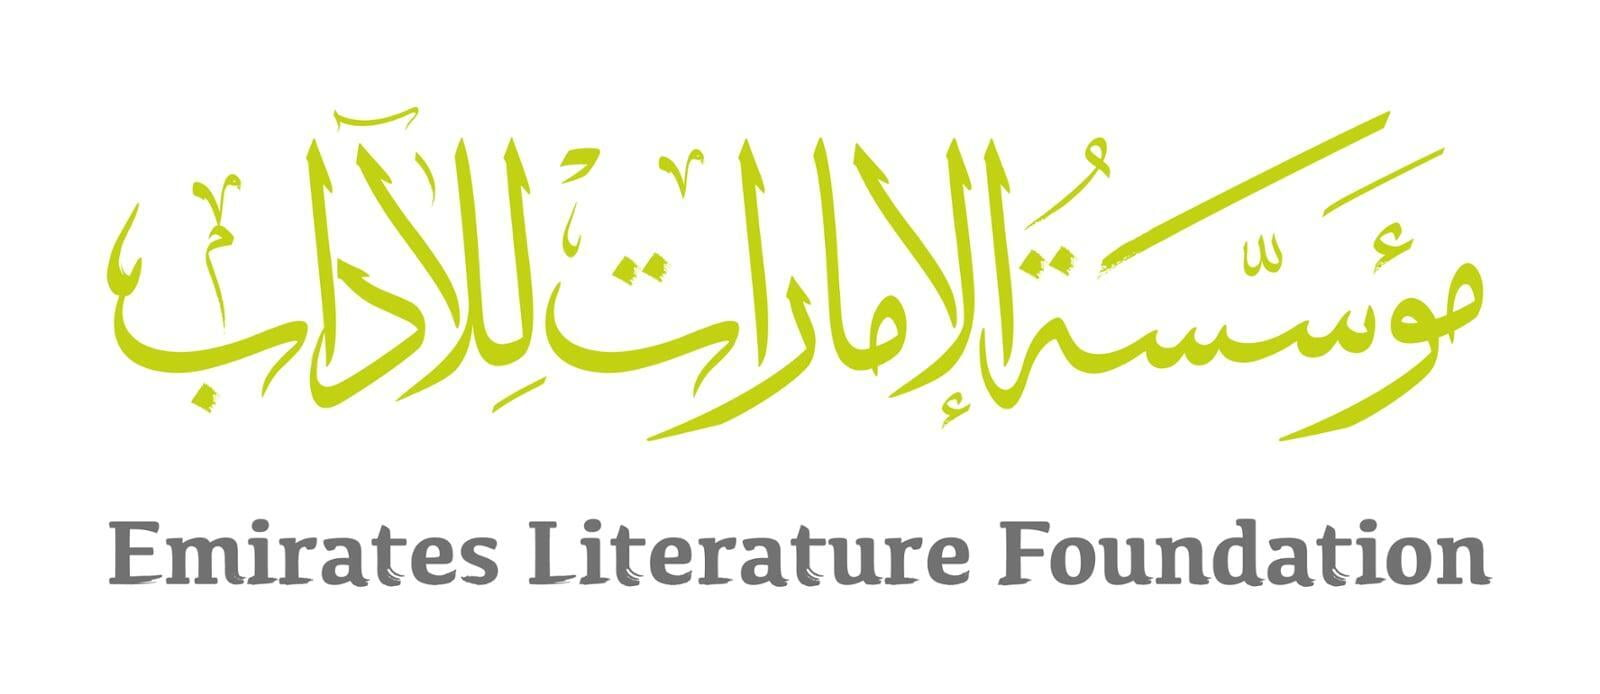 Emirates Literature Foundation Blog (ELF)